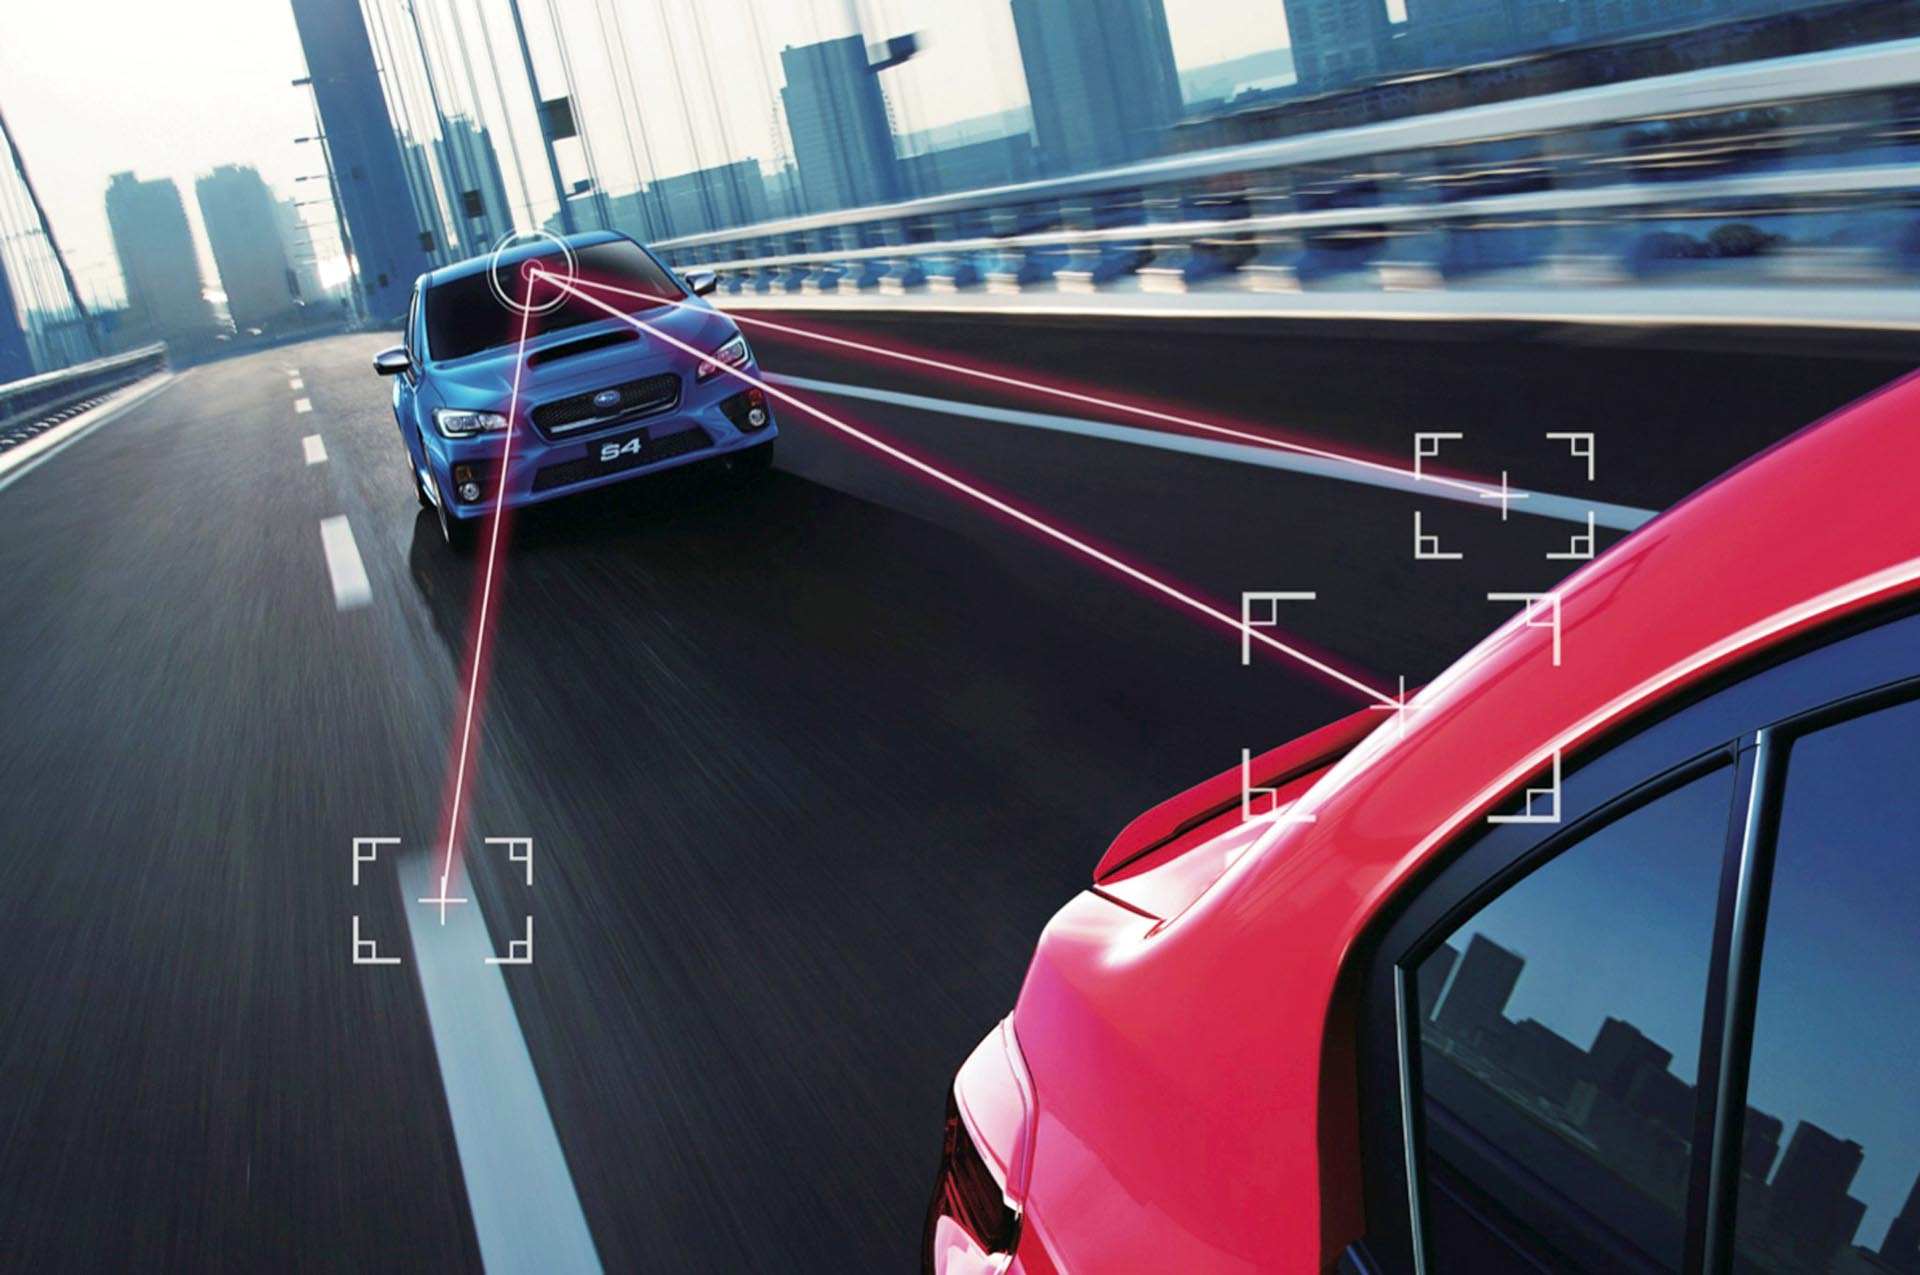 Subaru-Eyesight-Lane-Keeping-and-Collision-Avoidance-Subaru